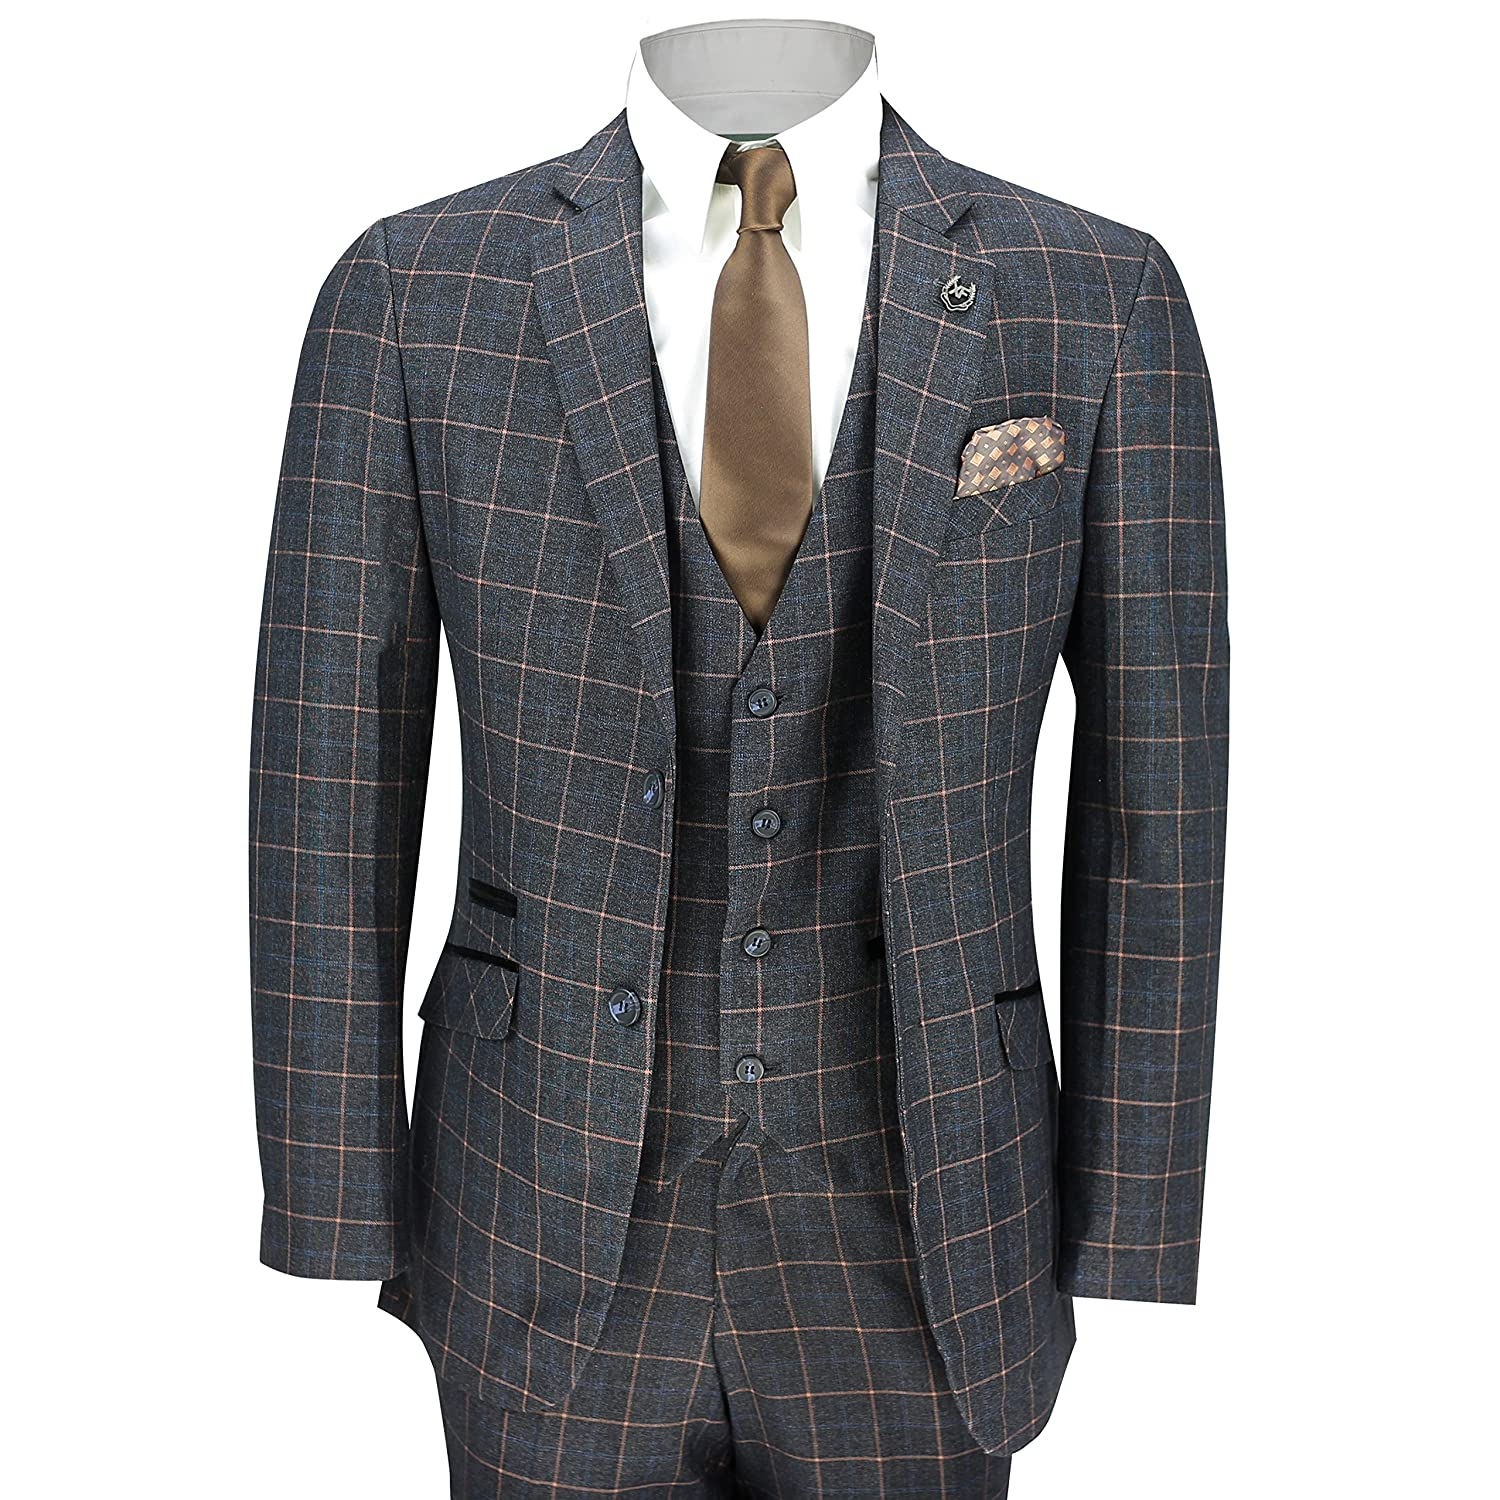 Dress in Great Gatsby Clothes for Men XPOSED Mens 3 Piece Blue Orange Window Check on Charcoal Grey Retro Smart Tailored Fit Vintage Suit £96.99 AT vintagedancer.com